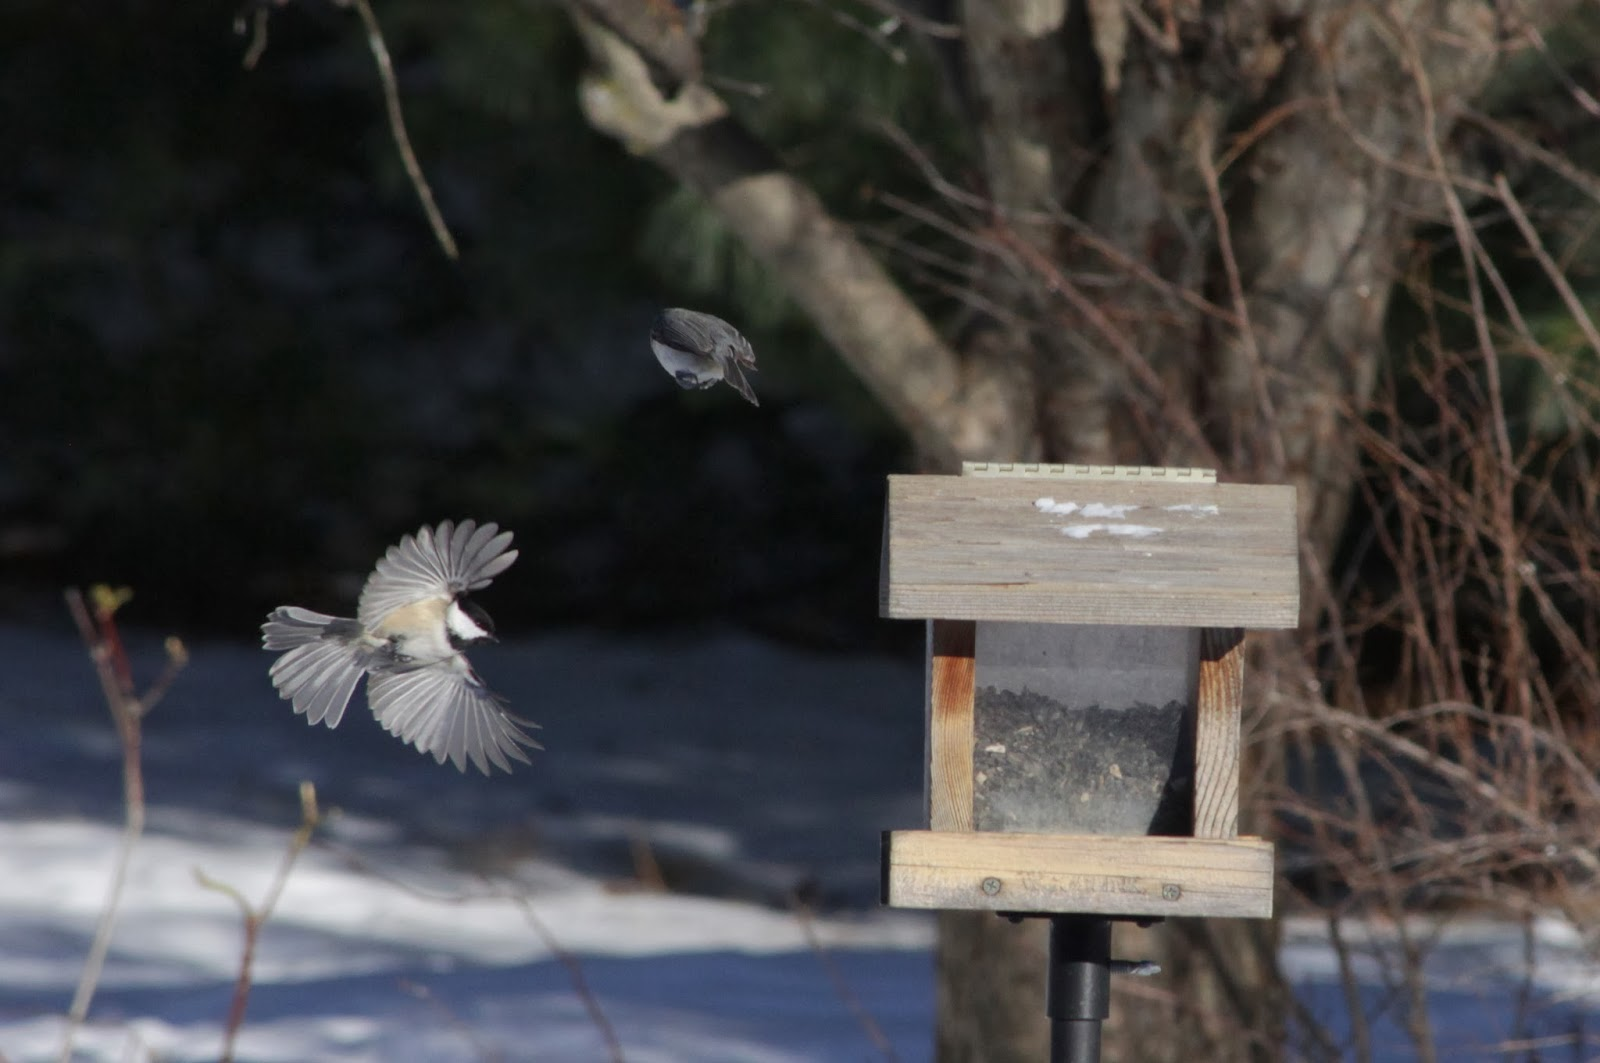 flying to the feeder one